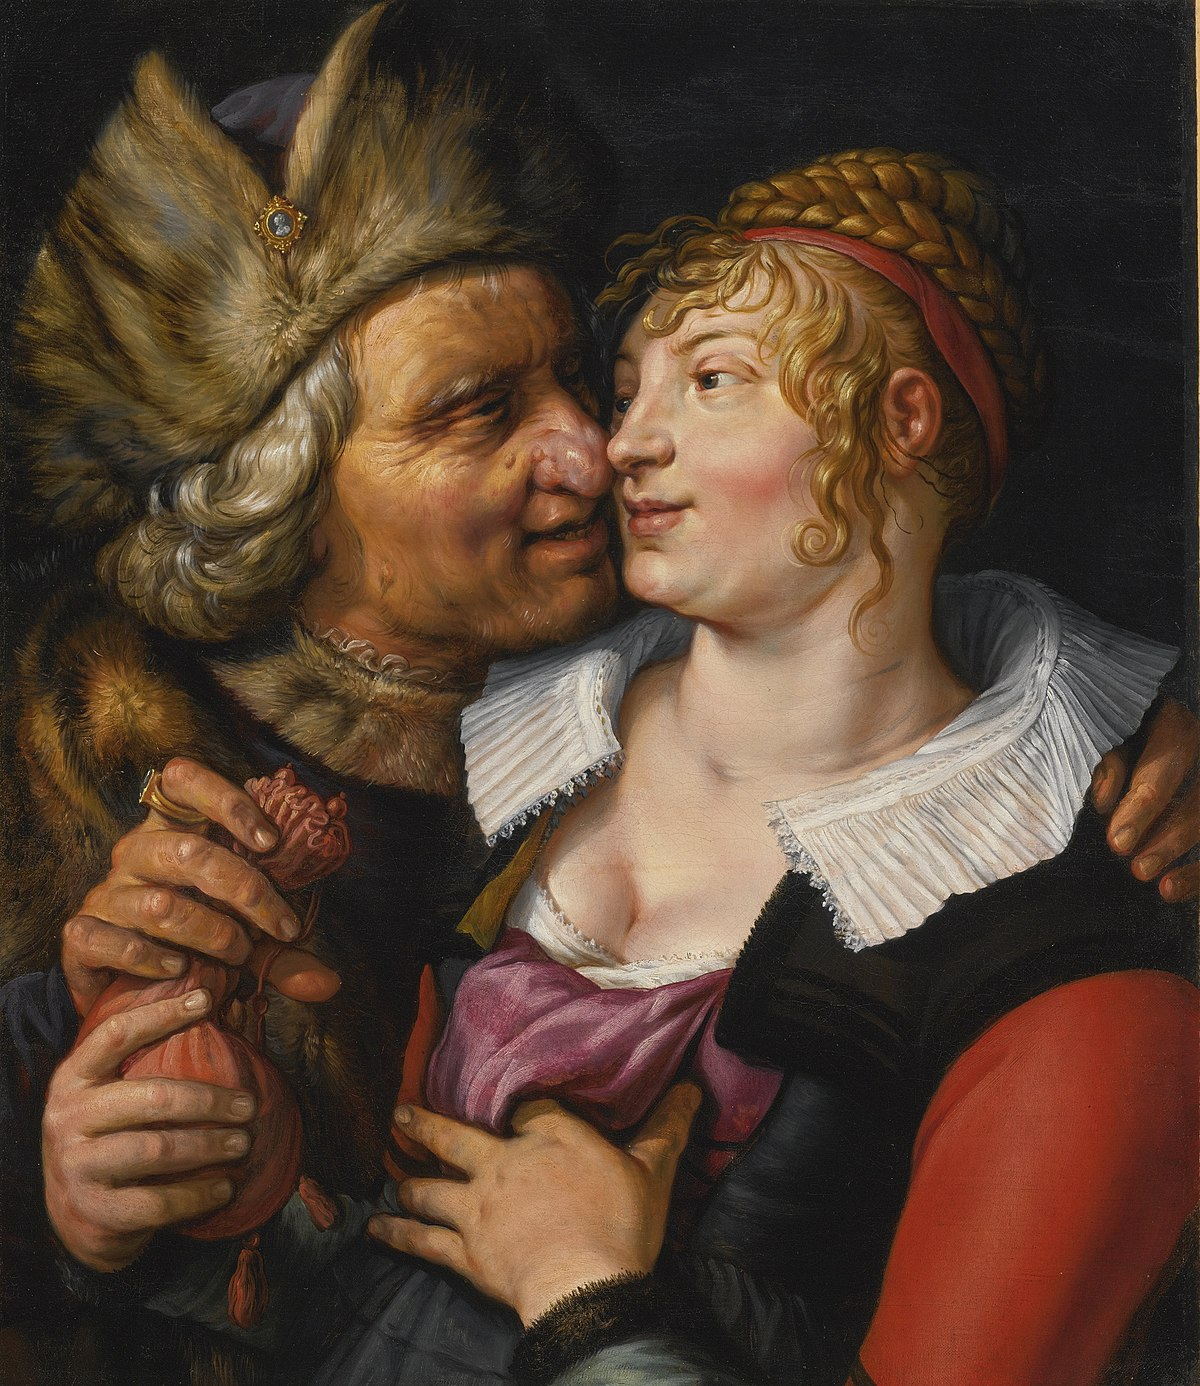 http://upload.wikimedia.org/wikipedia/commons/thumb/e/ee/HENDRICK_GOLTZIUS_UNEQUAL_LOVERS.jpg/1200px-HENDRICK_GOLTZIUS_UNEQUAL_LOVERS.jpg